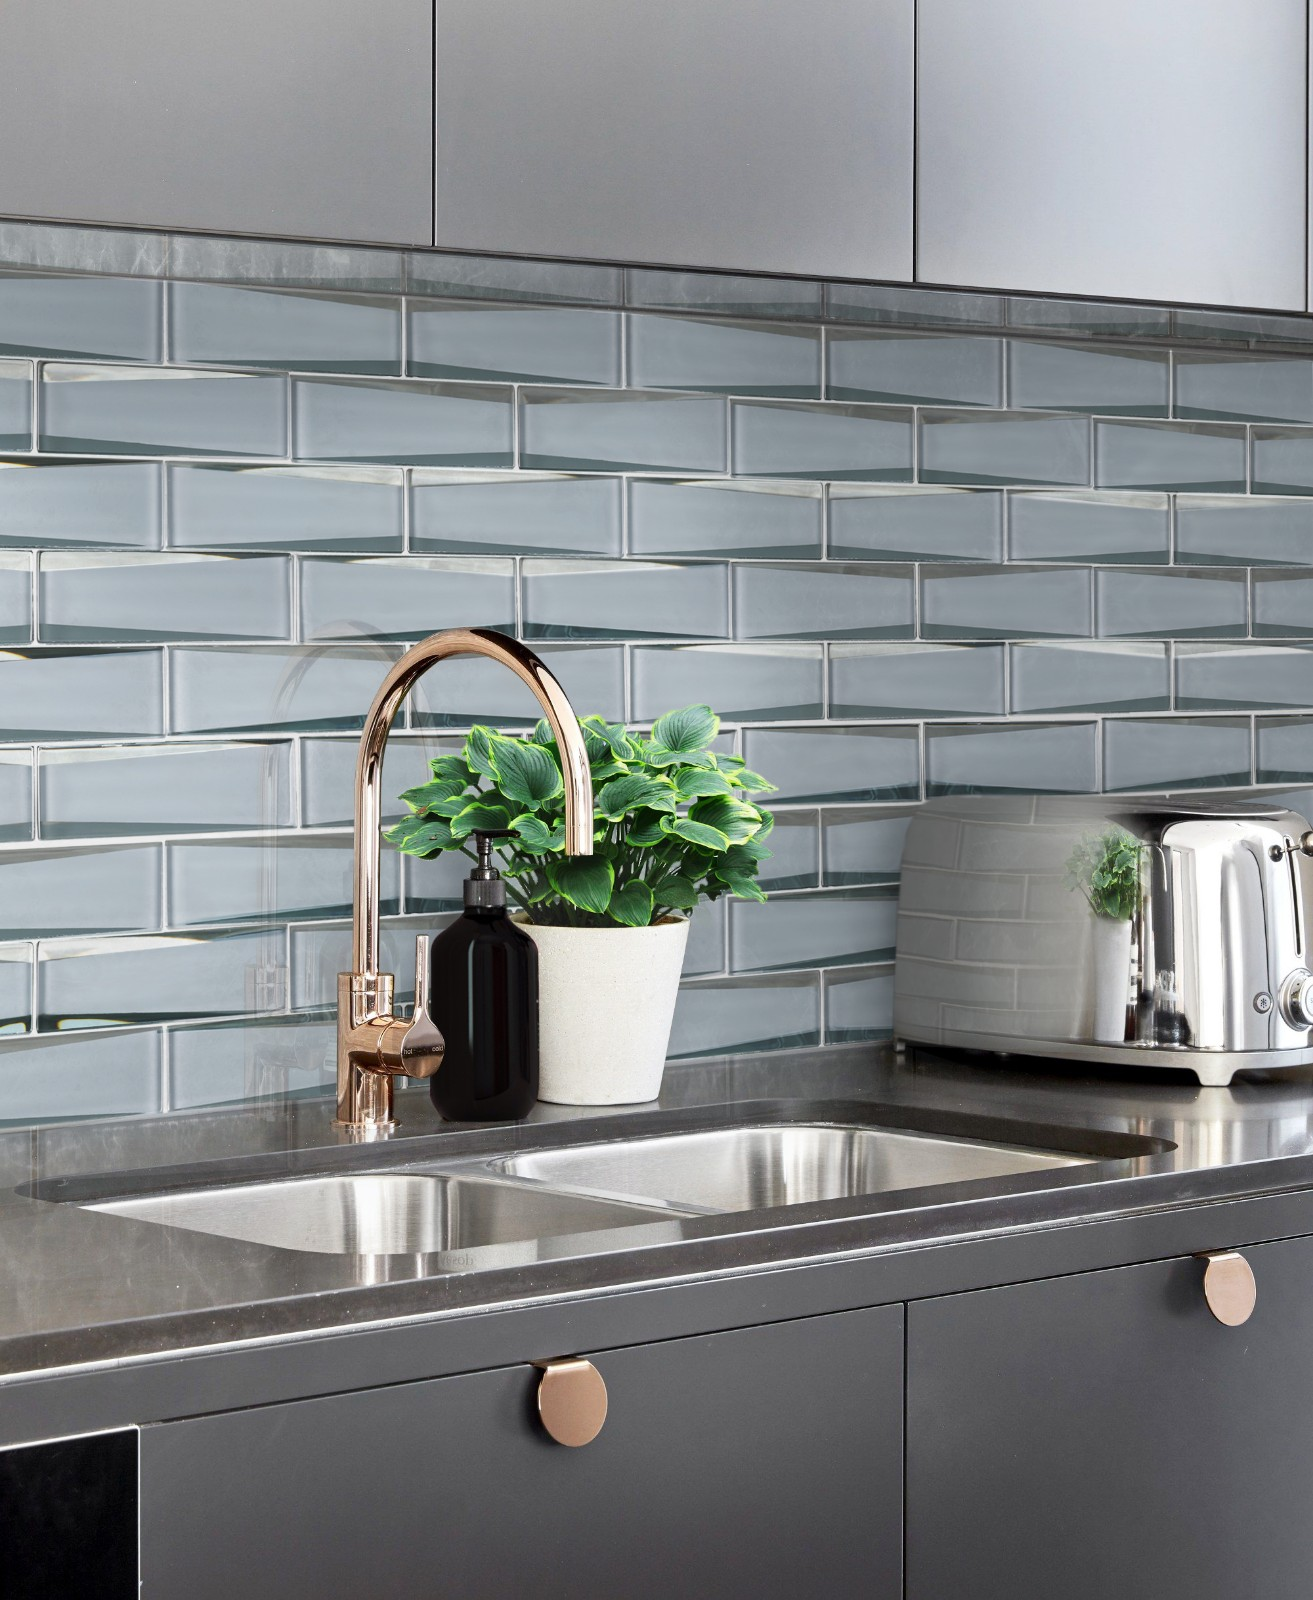 Heng Xing-Oem Hexagon Tile Manufacturer, Herringbone Backsplash | Heng Xing-5